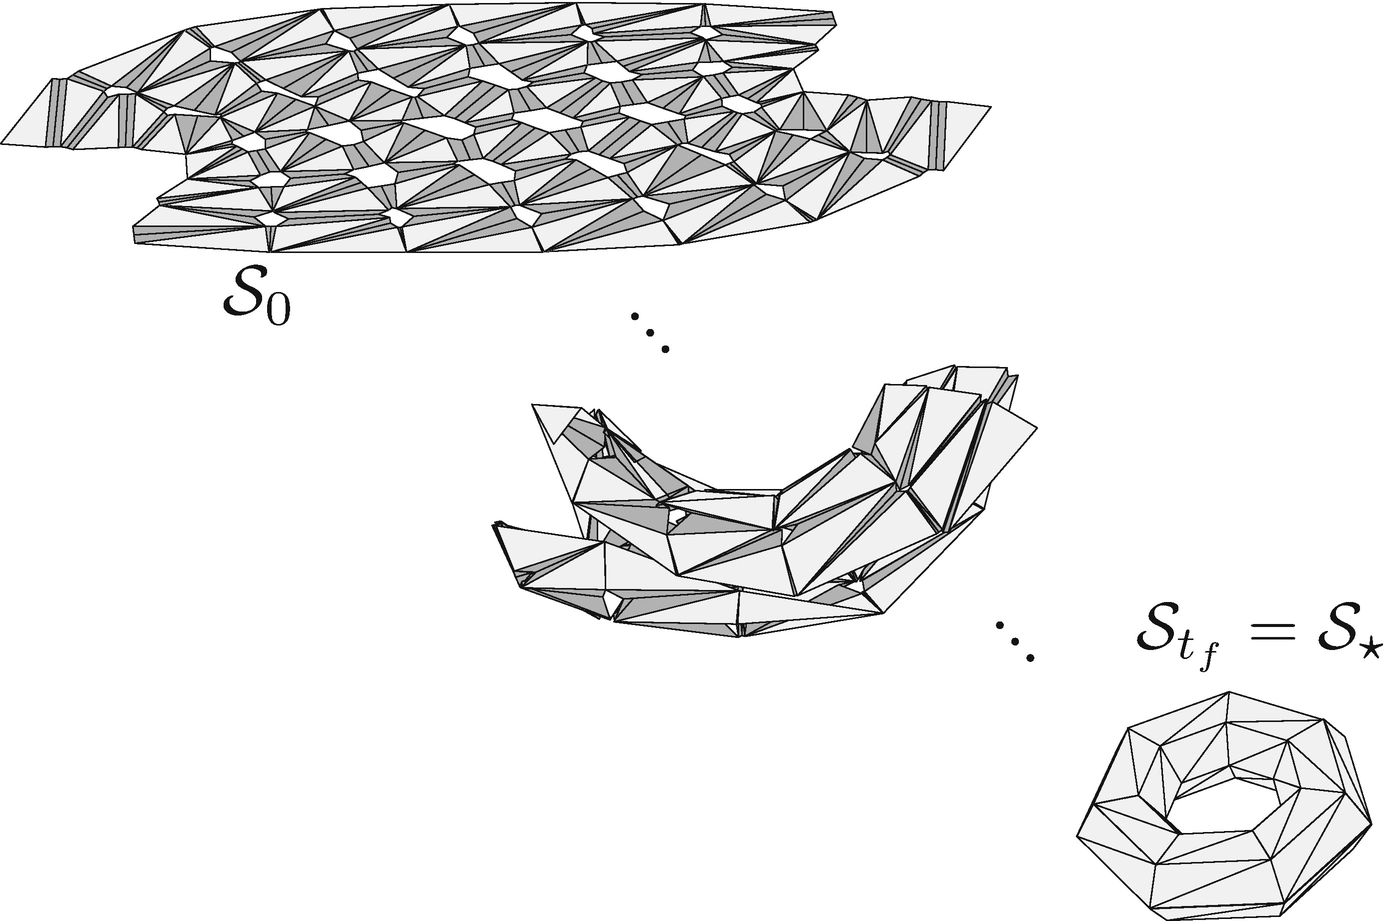 Tuck Folding Method For The Design Of Origami Structures With More Information About Dog Diagram On Site Http Static Open Image In New Window